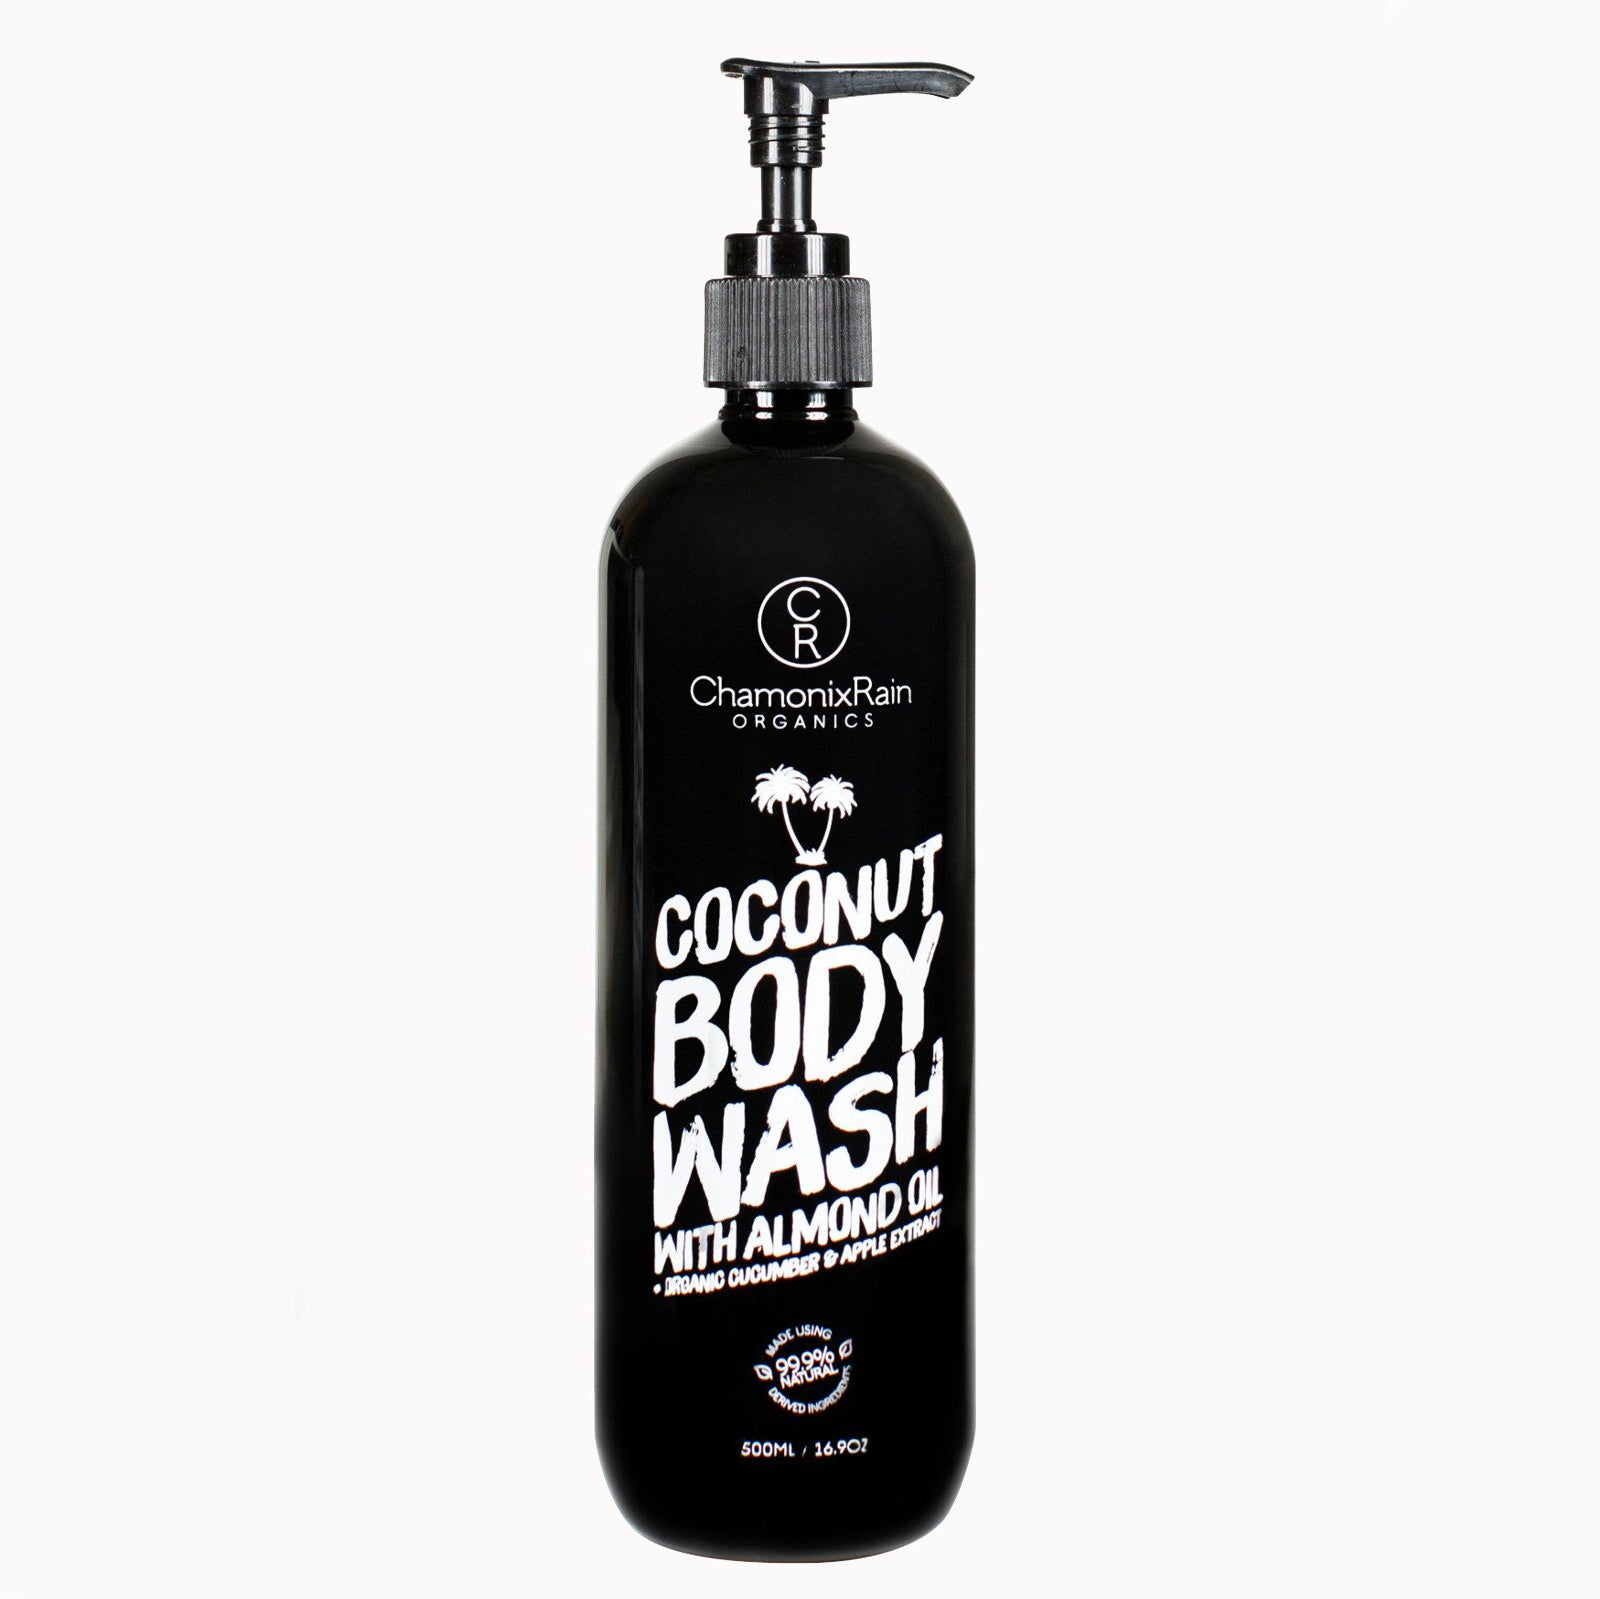 Pump bottle of Chamonix Rain Organics coconut body wash